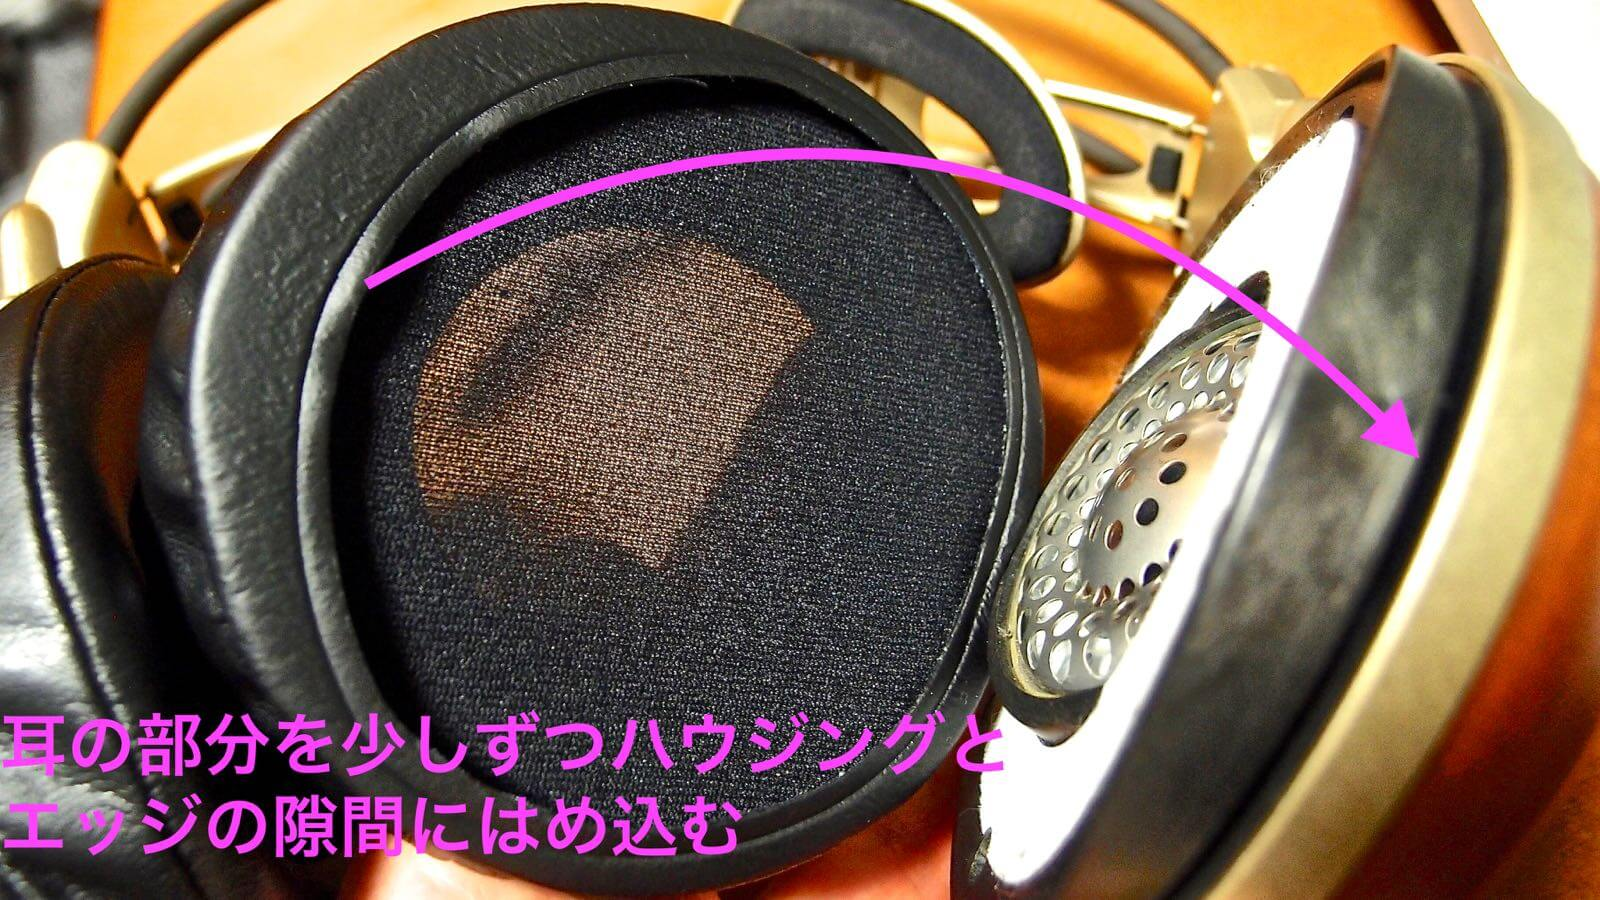 0079 HP W1000 Ear Pad Replacement Method 11